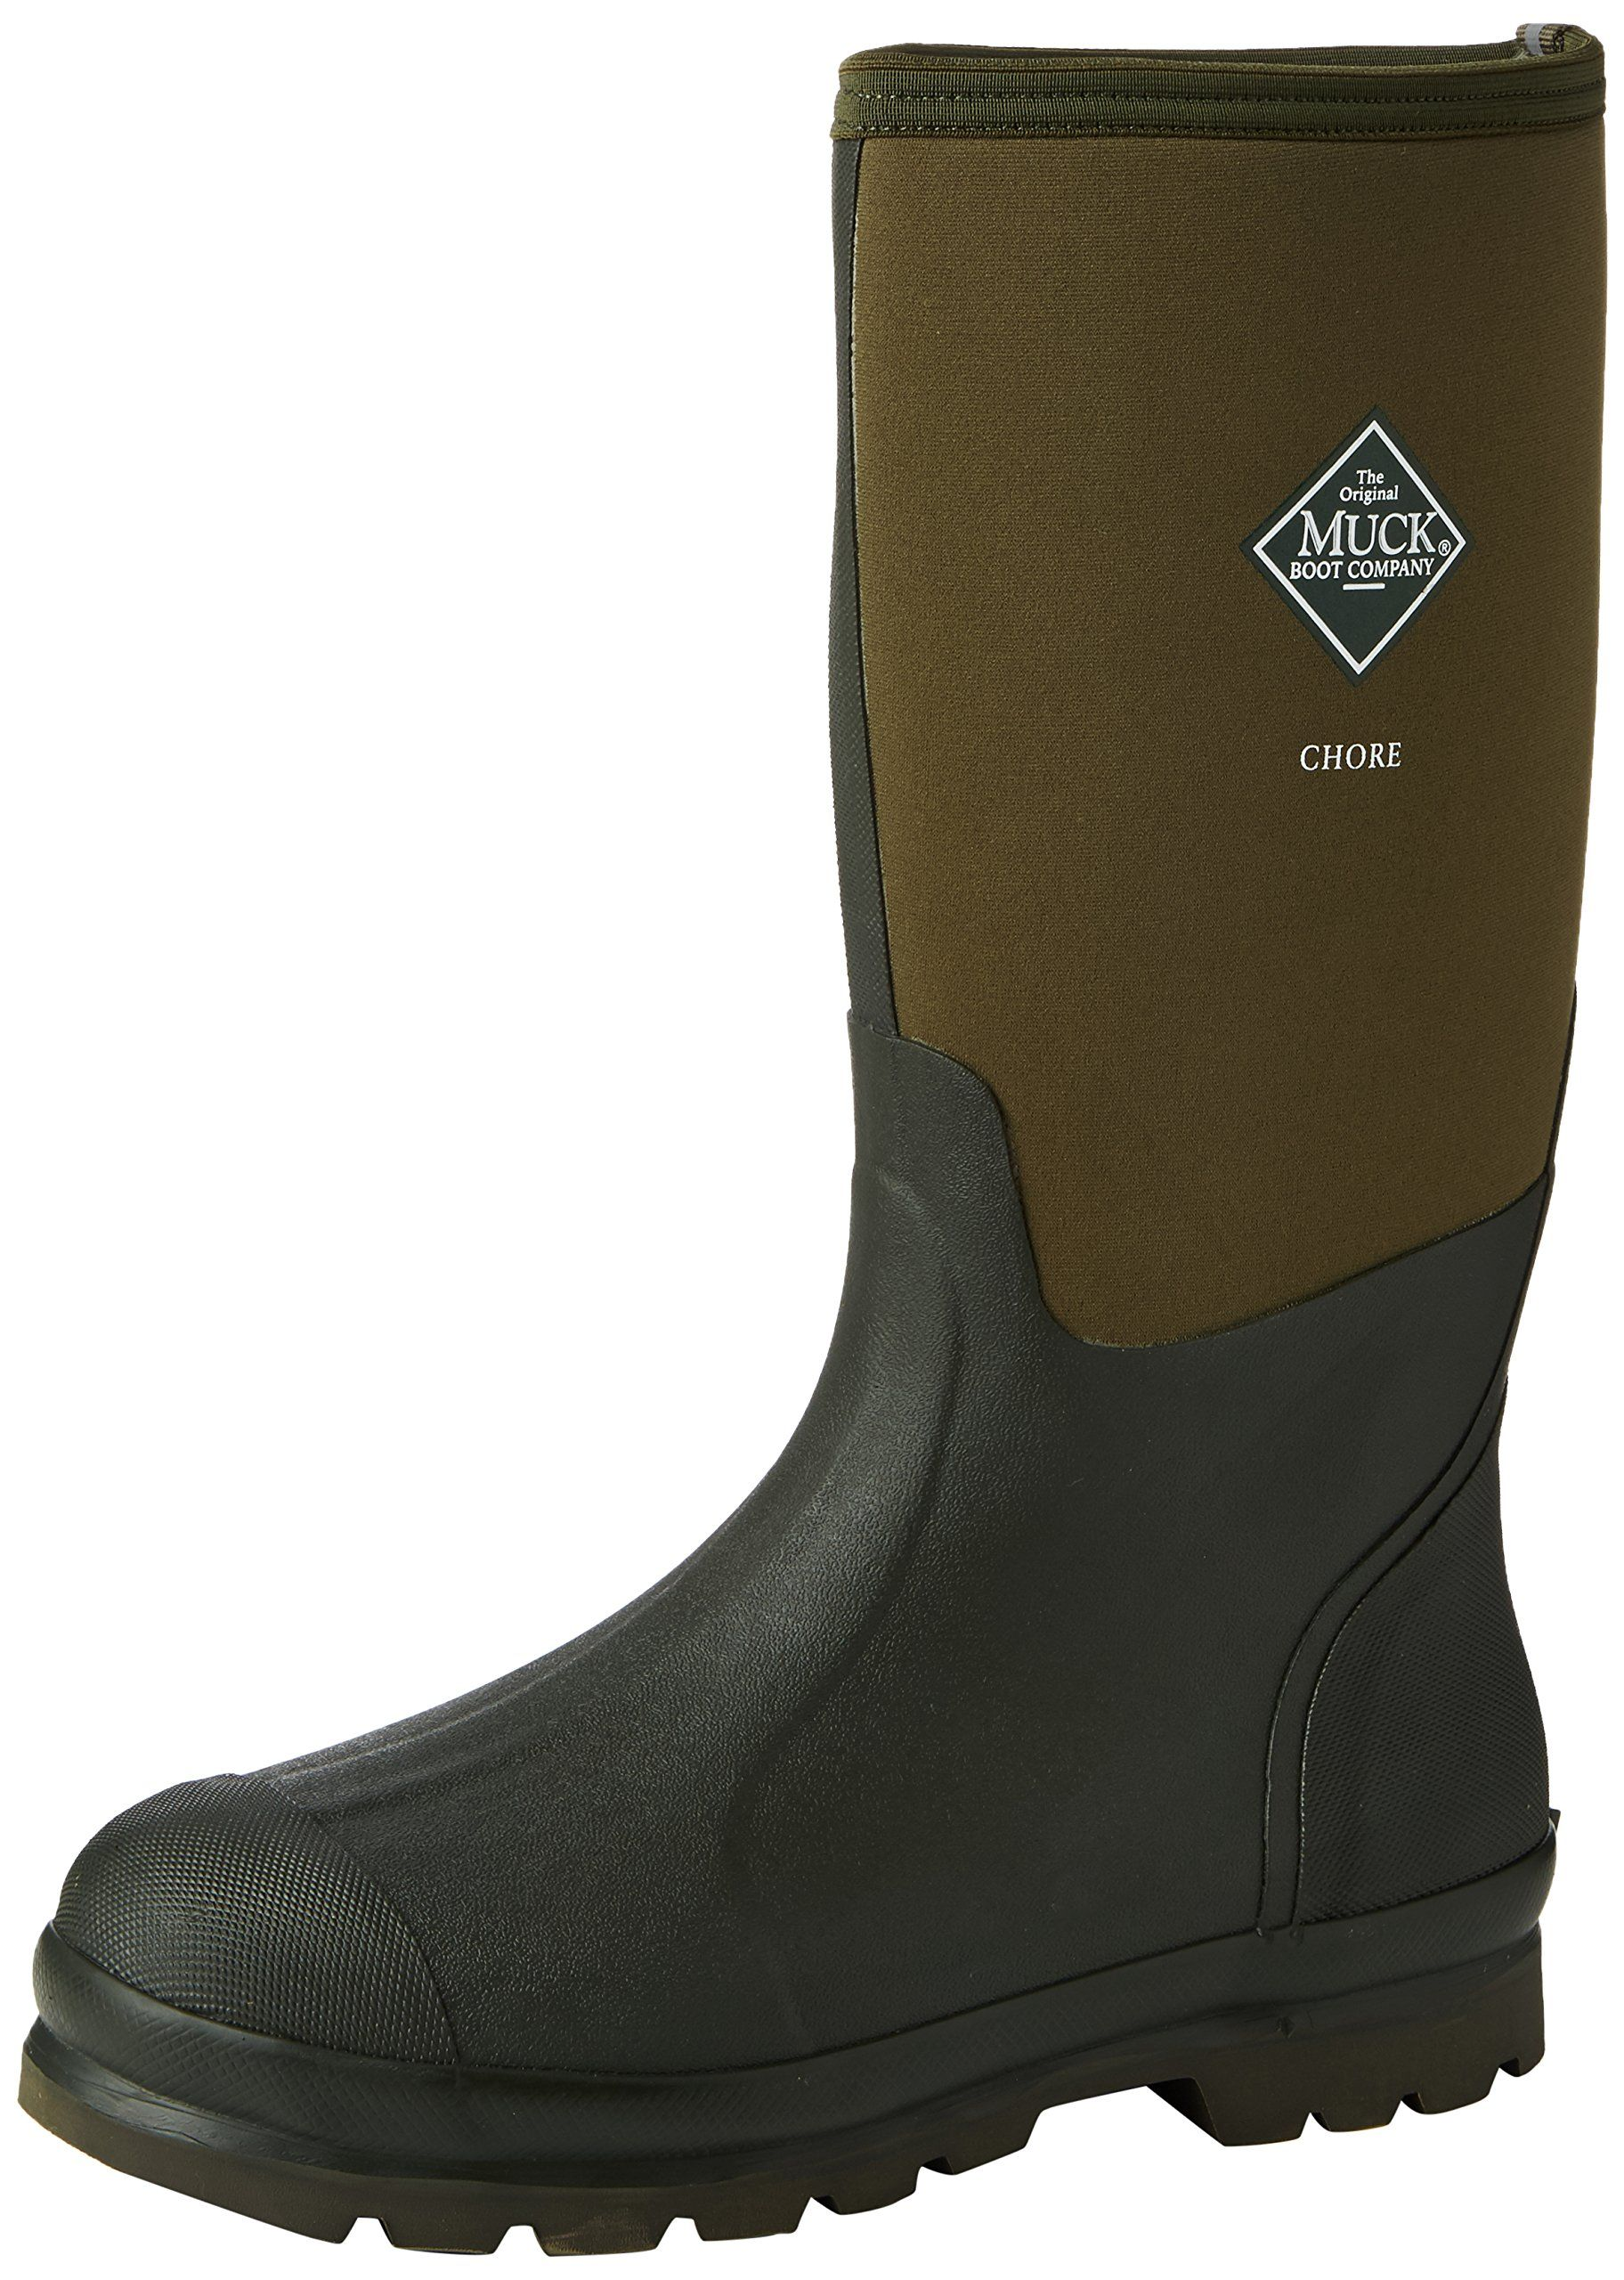 Muck Boot Chore Hi Moss Green Neoprene Wellies (10UK) | shoes ...